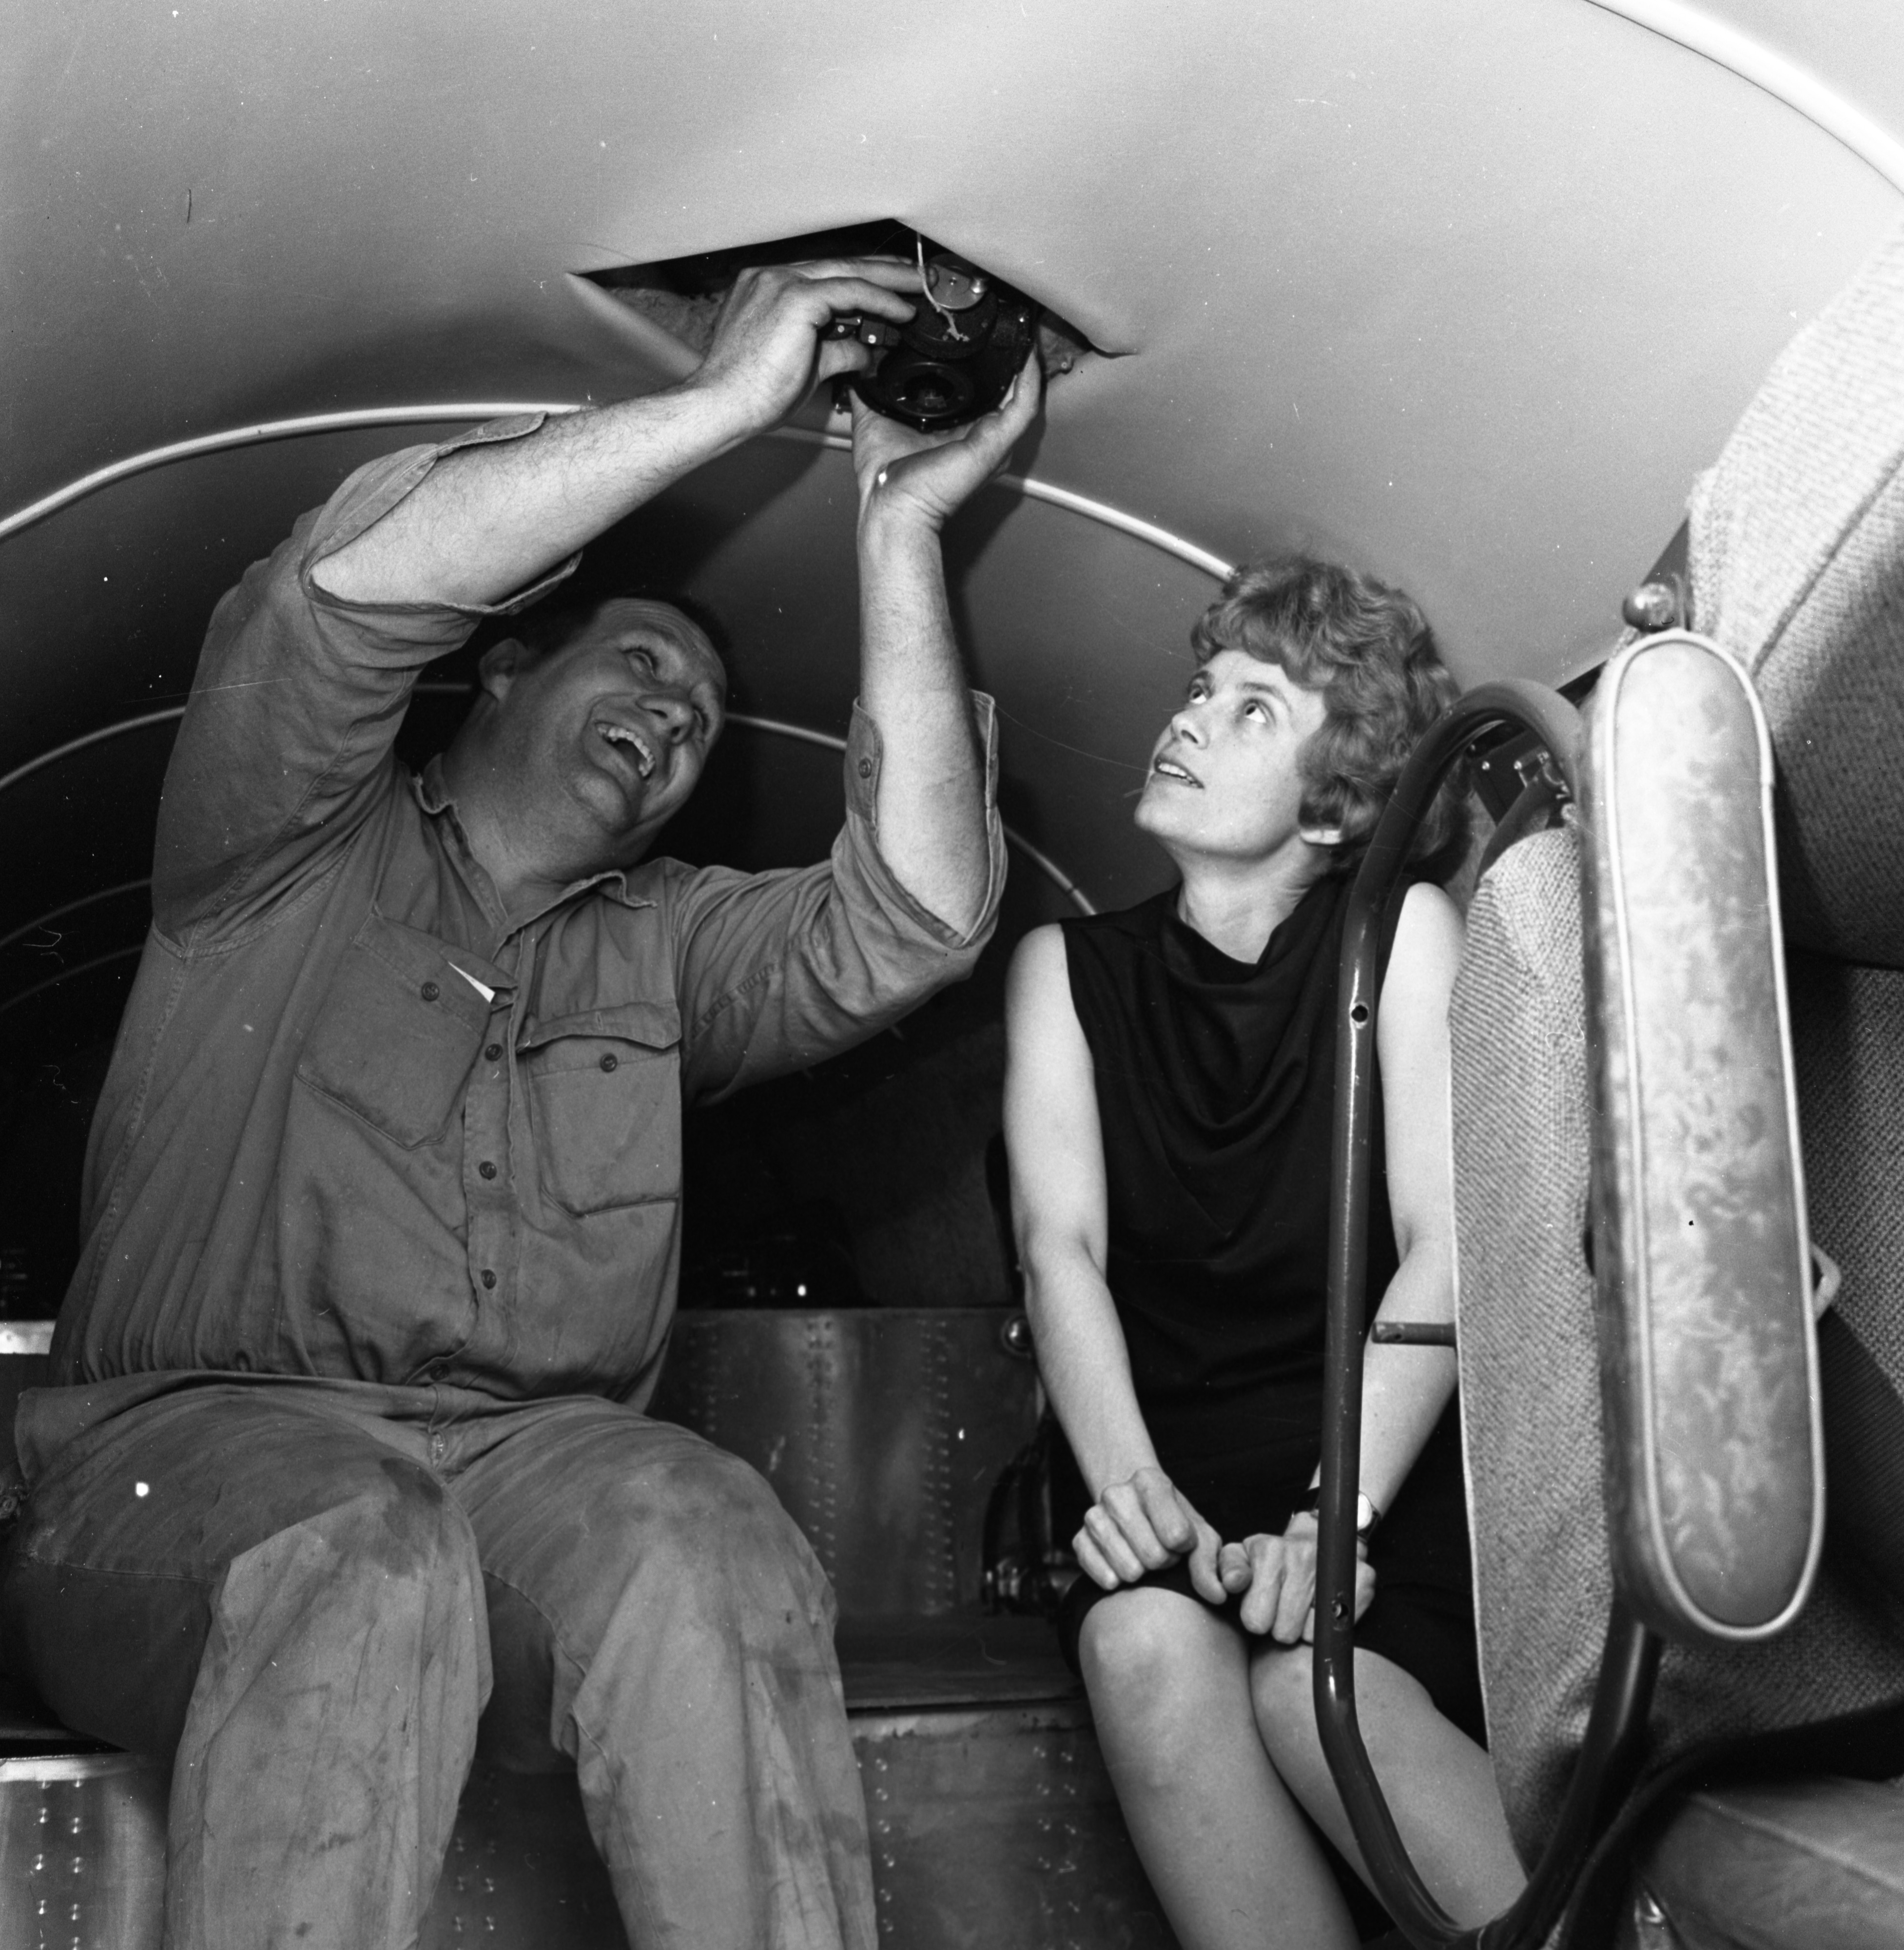 Pilot Ann Pellegreno and Mechanic Lee Koepke Check 1937-Vintage Plane for Amelia Earhart Commemorative Flight, May 1967 image